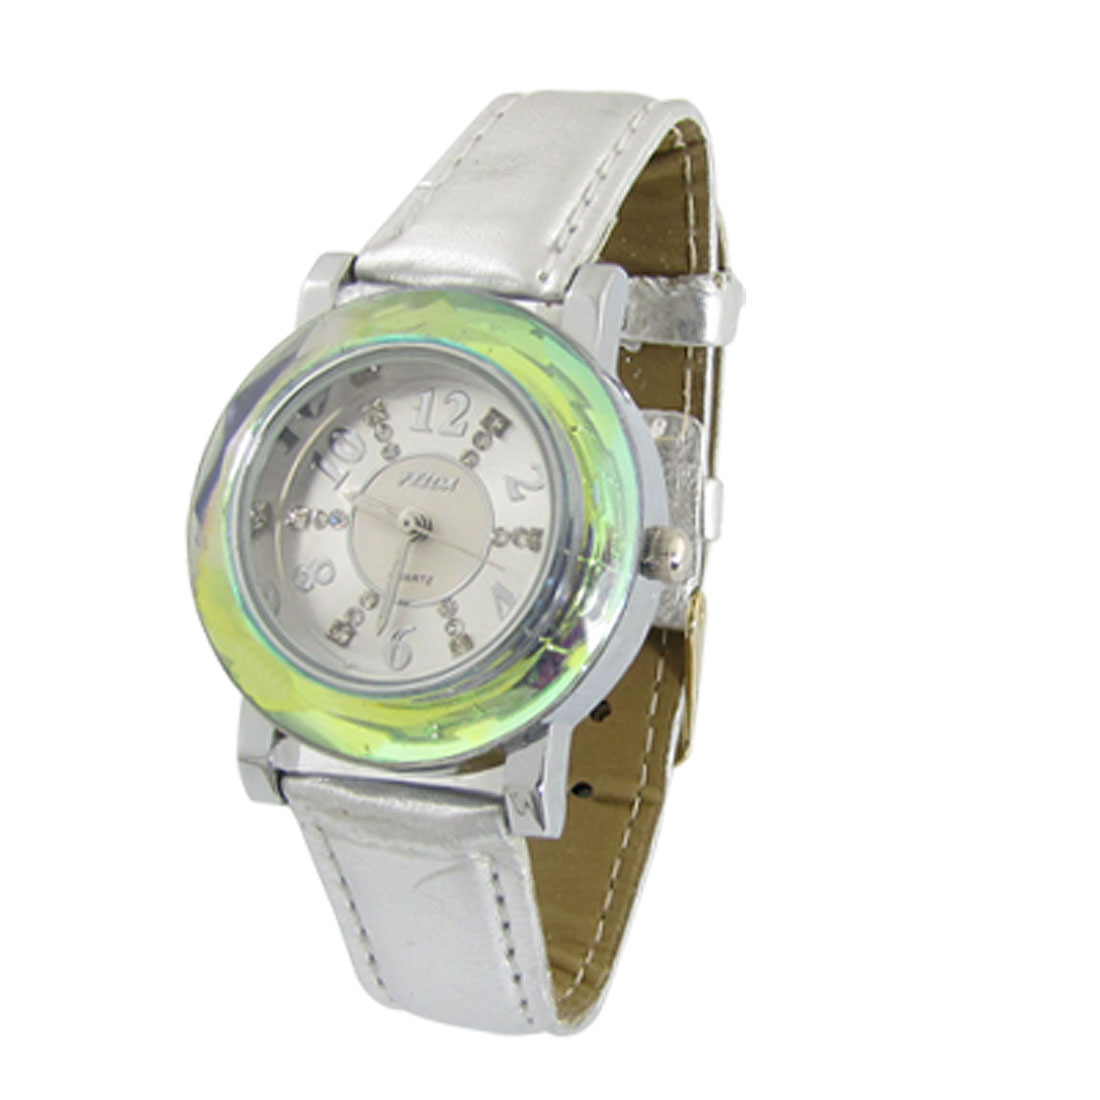 Silver Tone Faux Leather Band Round Dial Wrist Watch for Girls